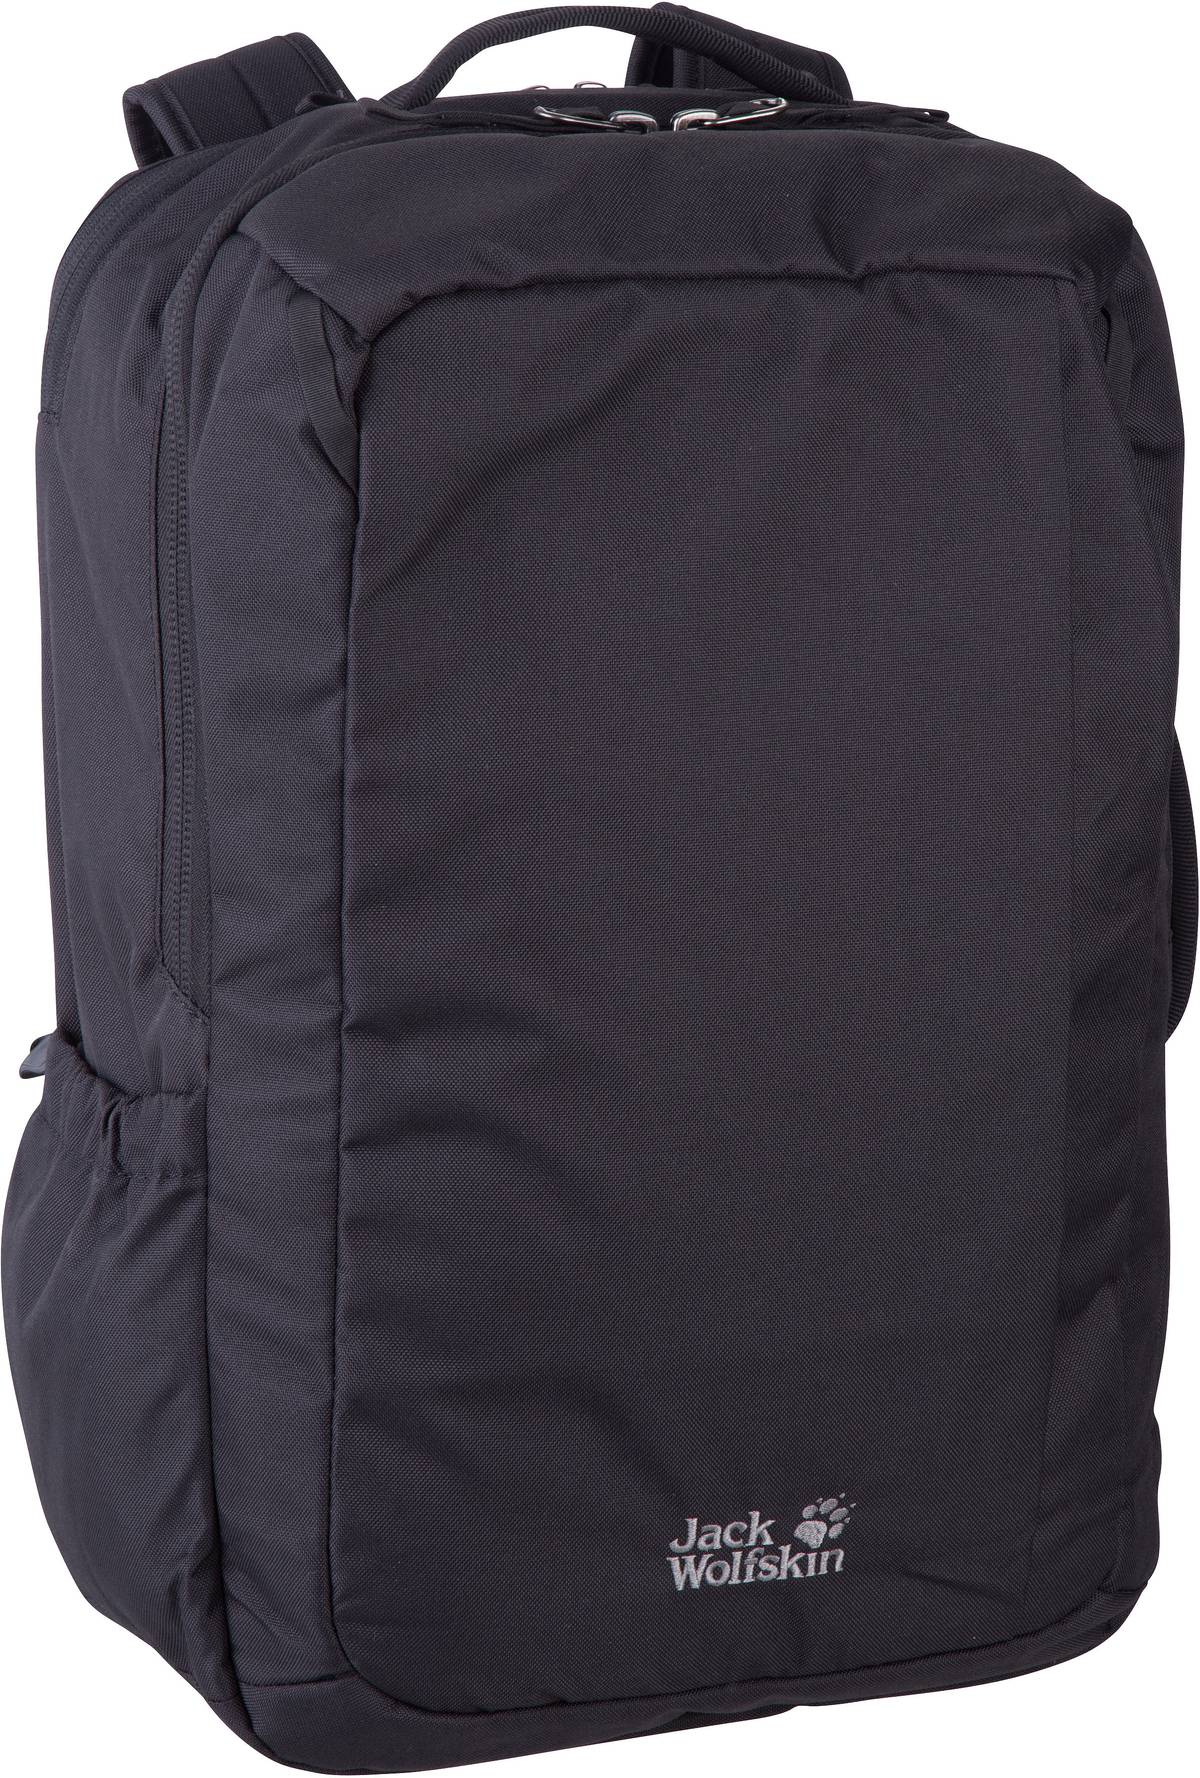 Rucksack / Daypack Brooklyn 26 Black (26 Liter)